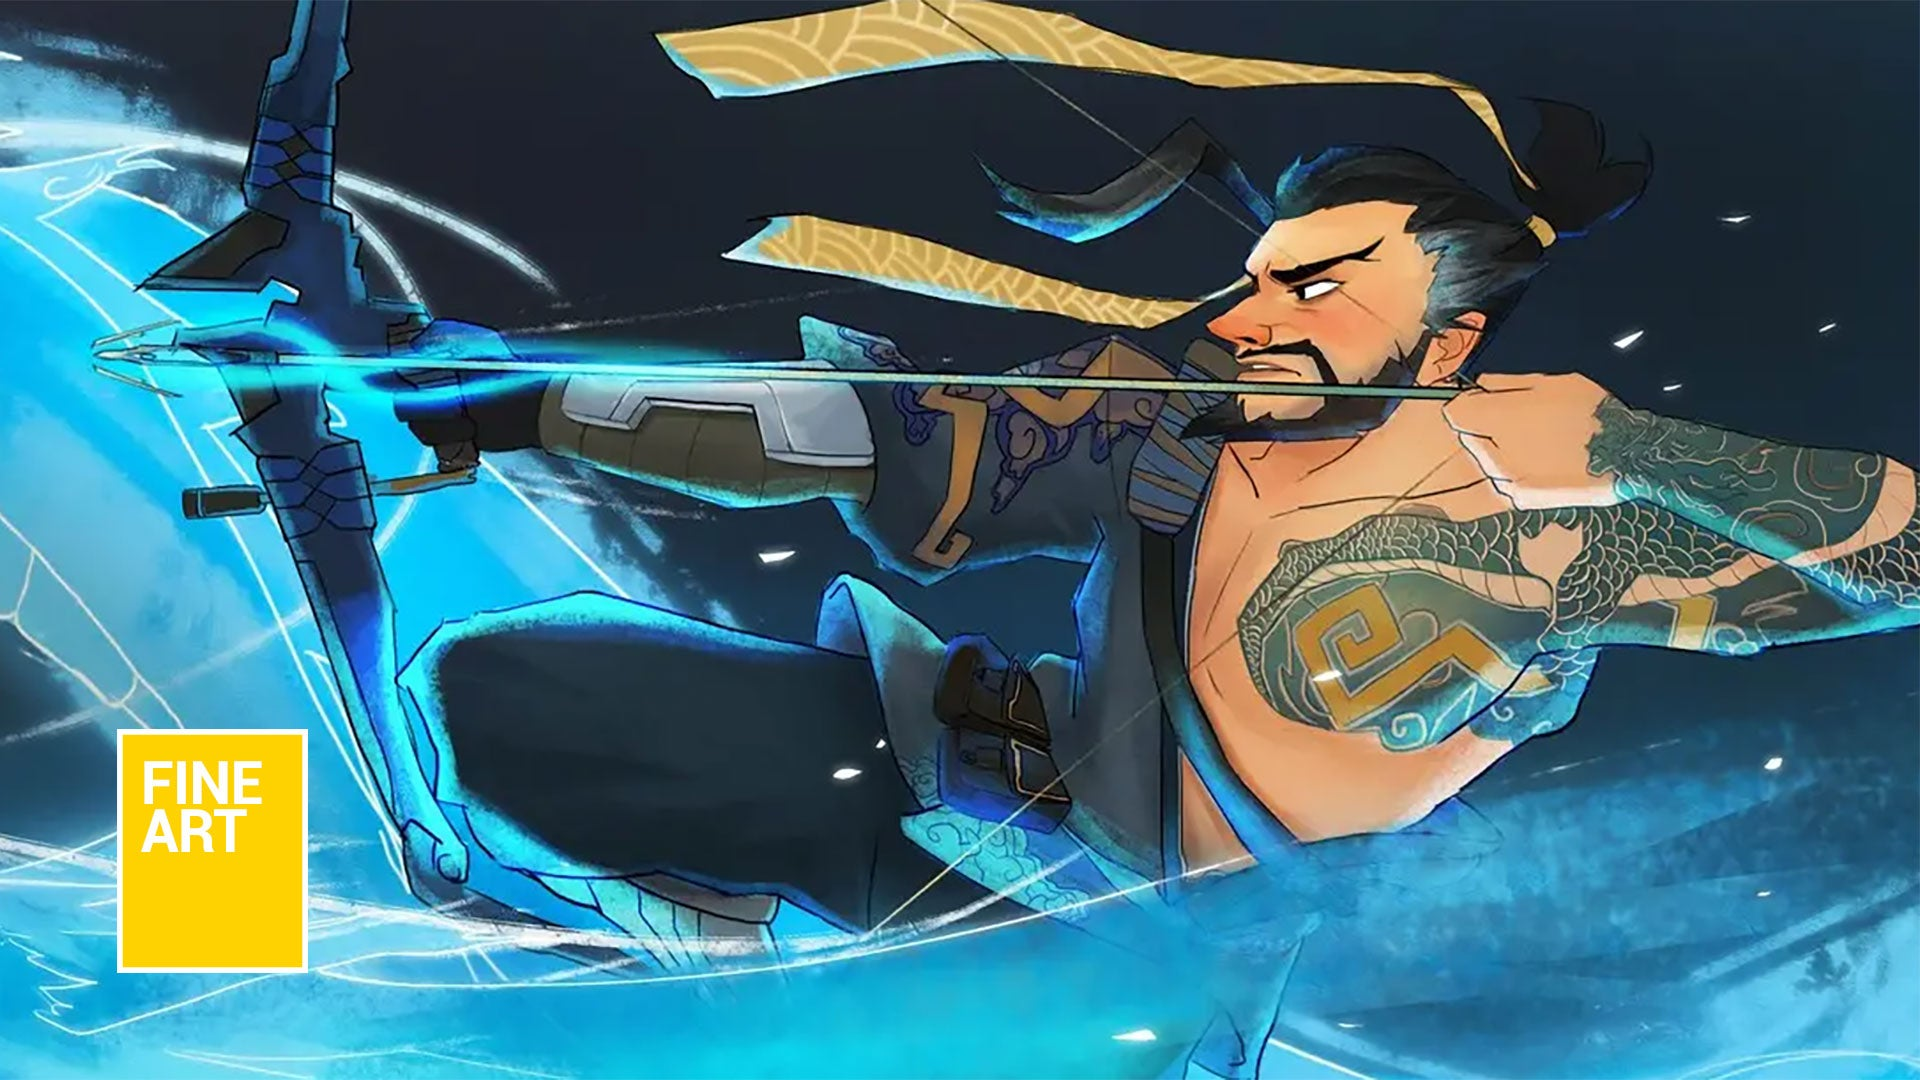 The Great Flying Hanzo